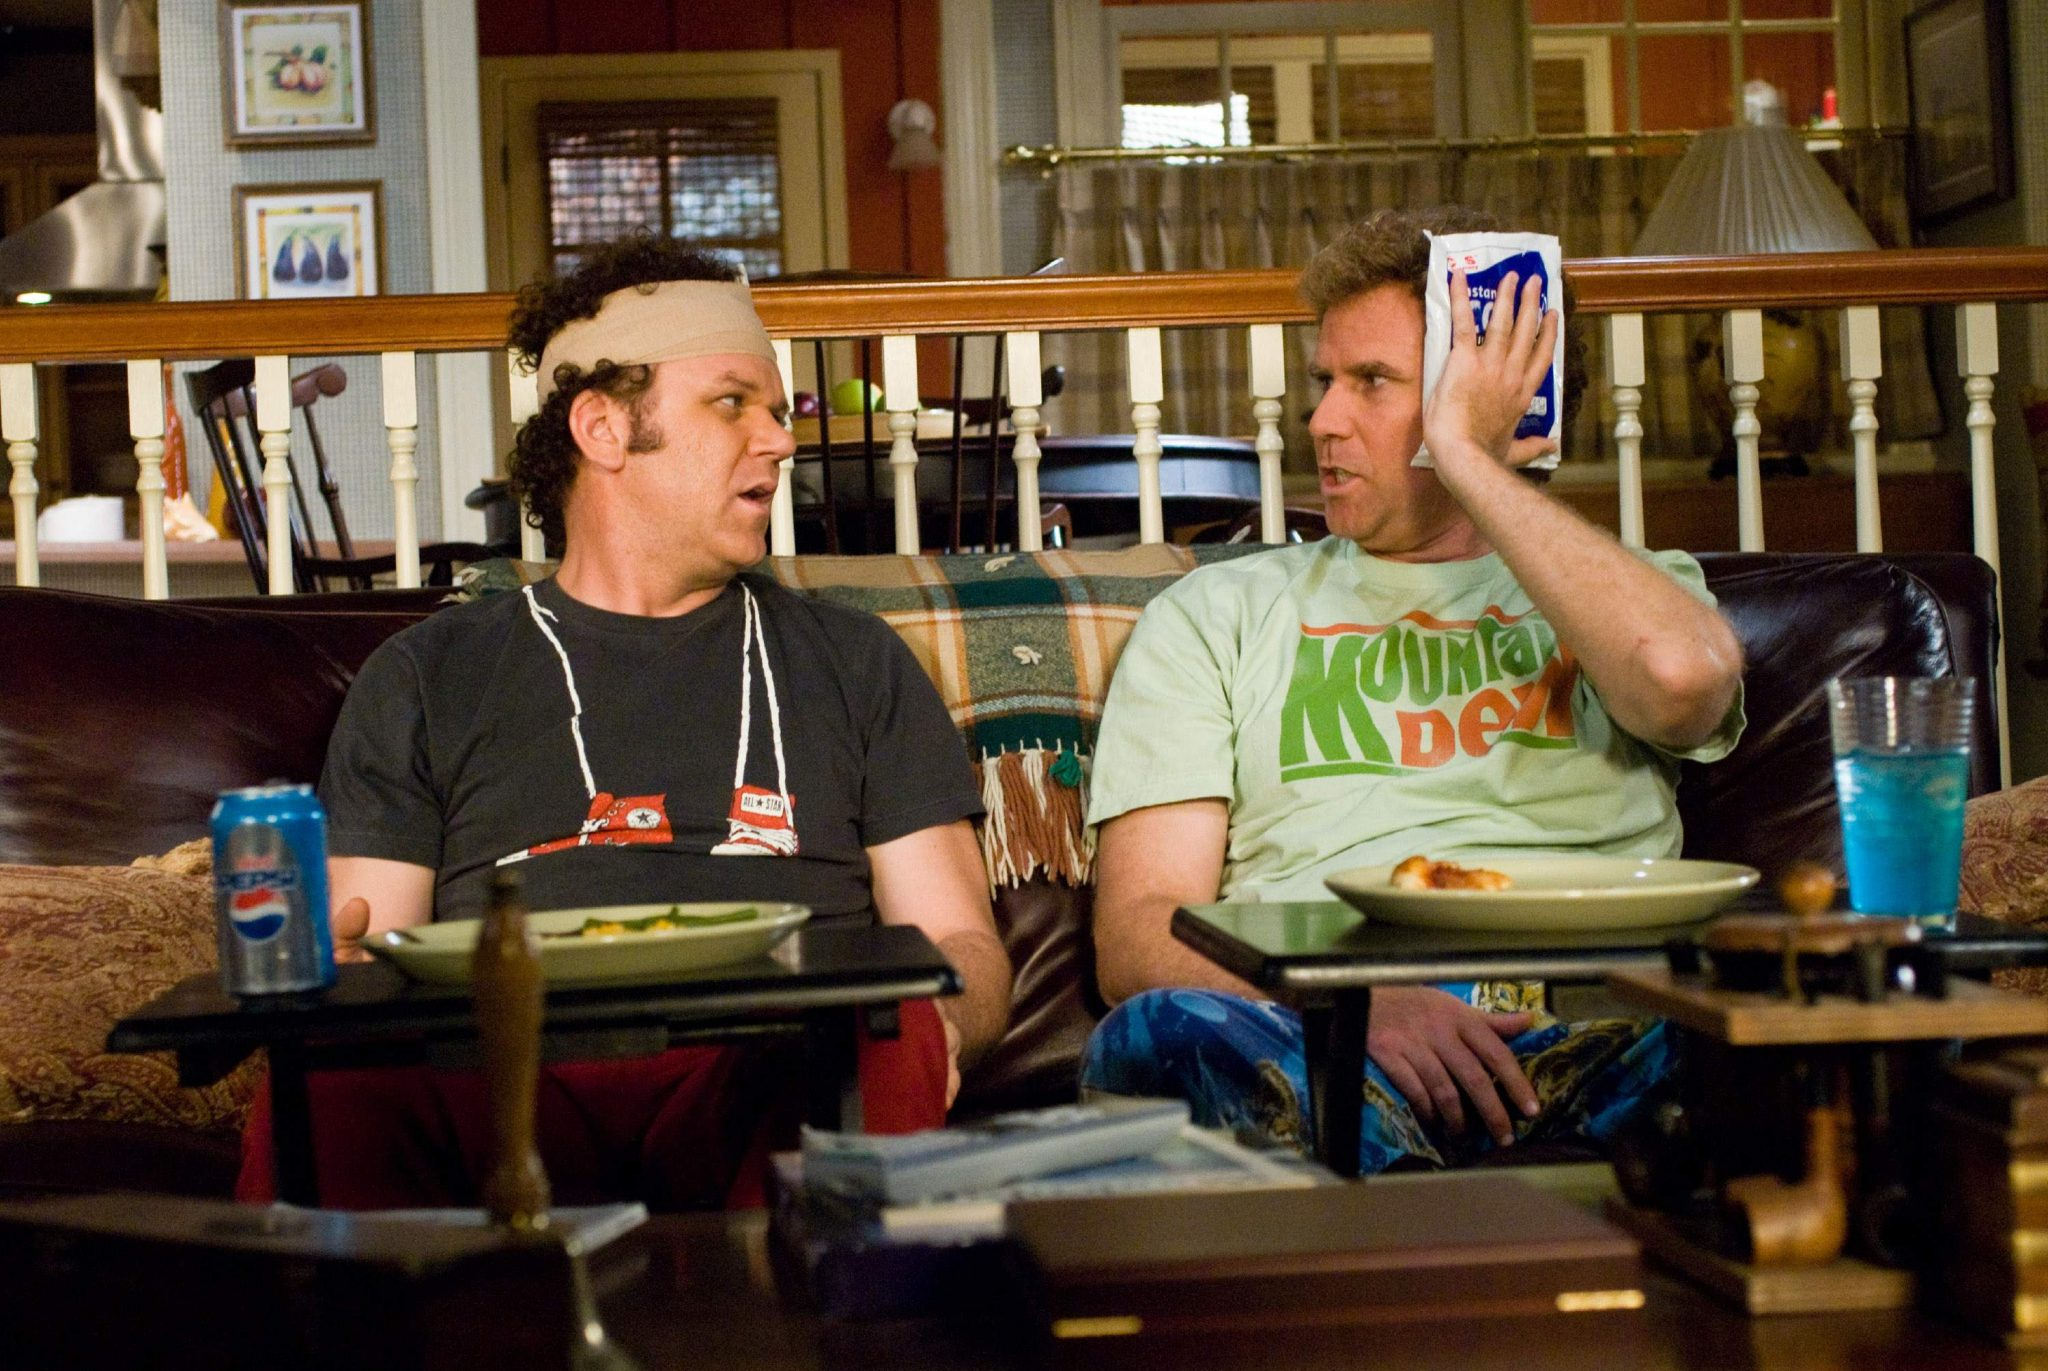 Reilly (left) will play Watson while Ferrell (right) plays Holmes.